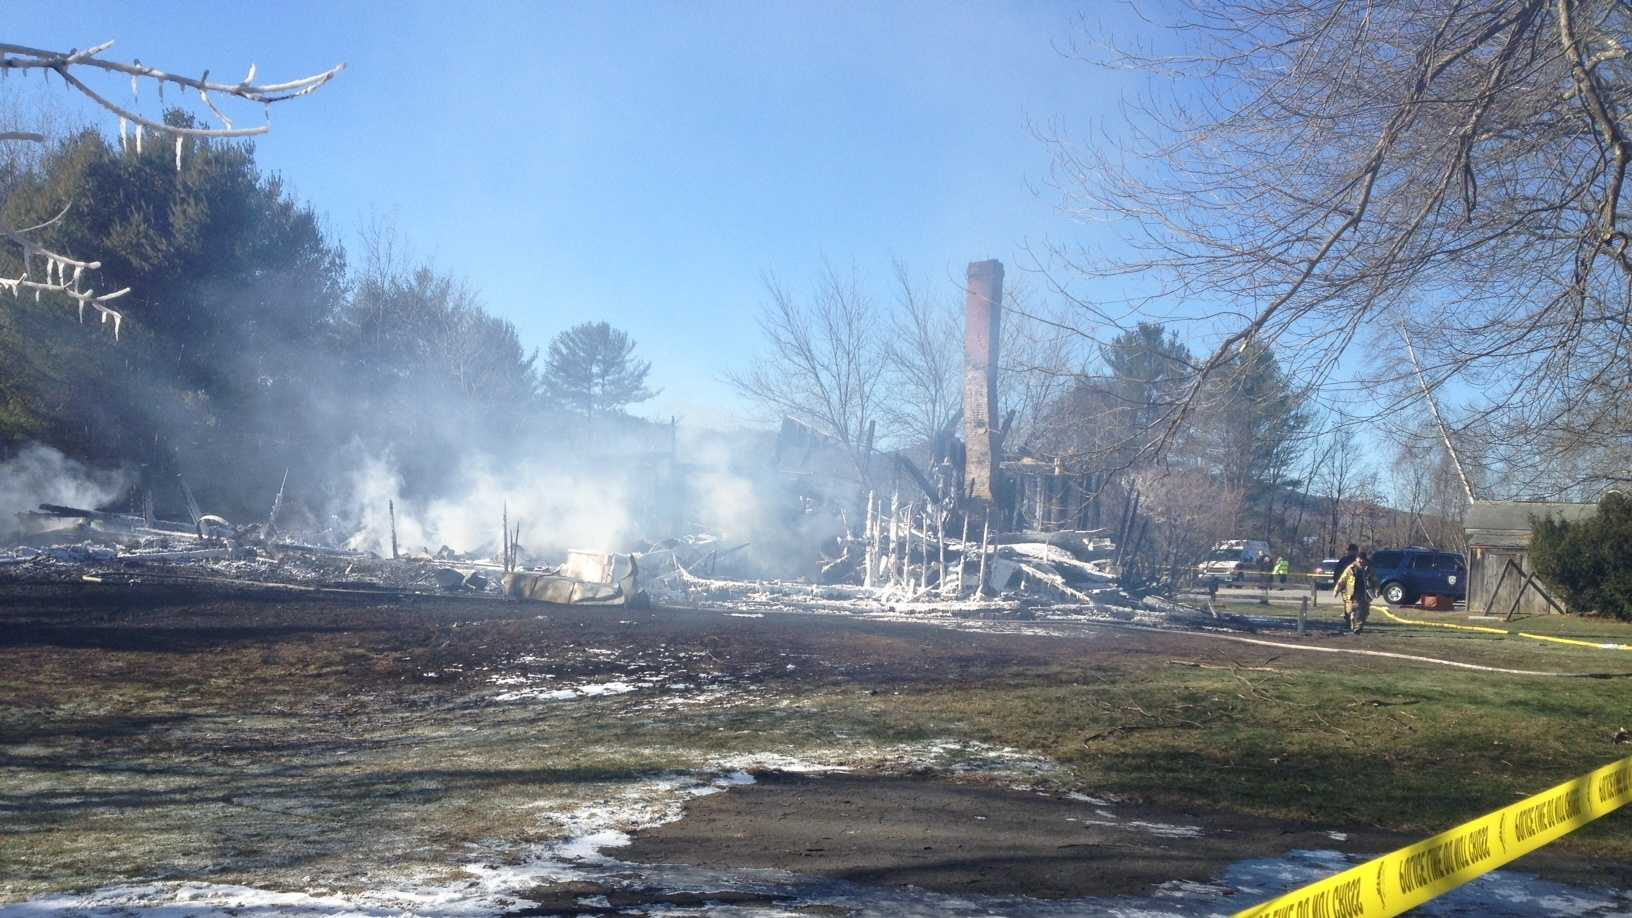 On Friday, firefighters returned to the scene to help put out hot spots. The state fire marshal's office was also called to the scene.